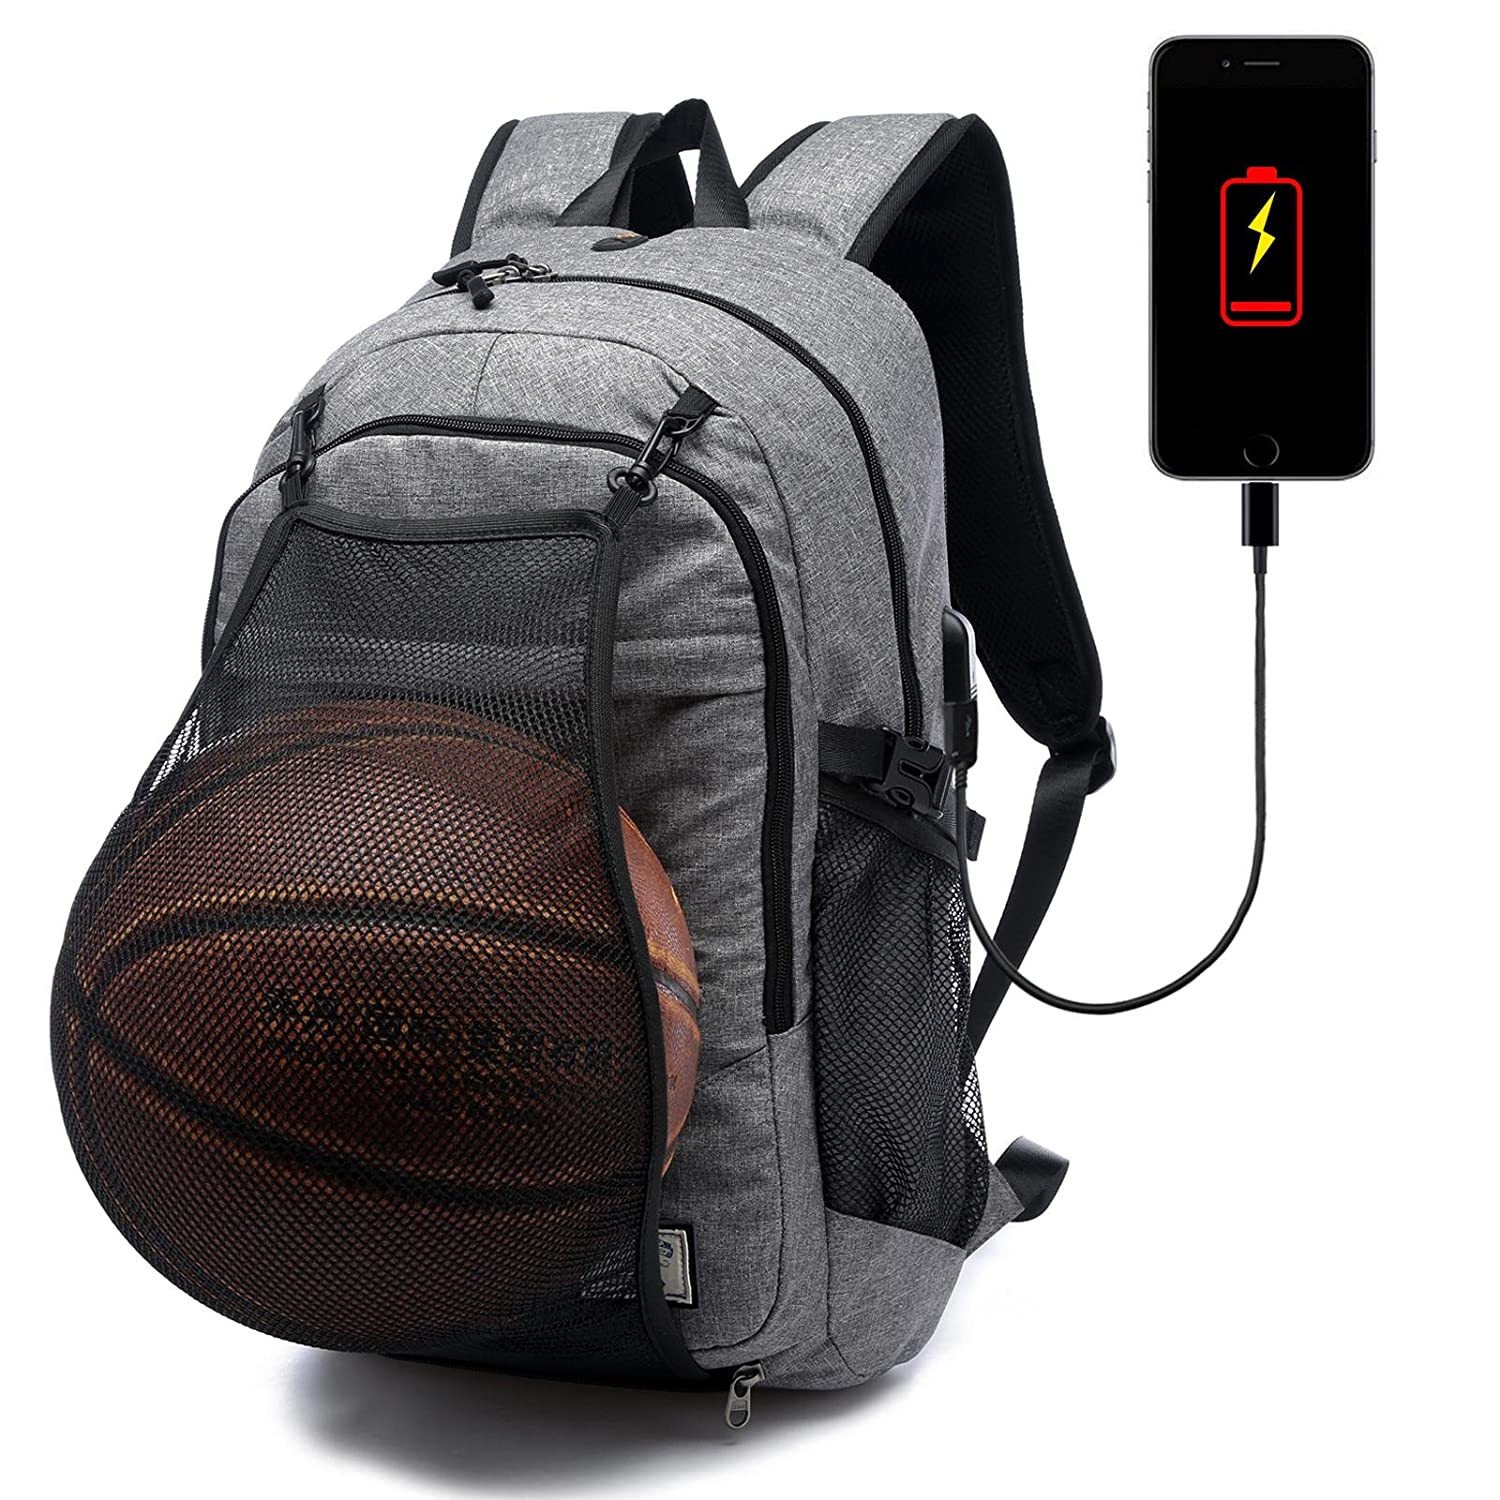 Loiee Business Water Resistant Basketball Backpack with USB Charging Port Fits for Under 17 inches